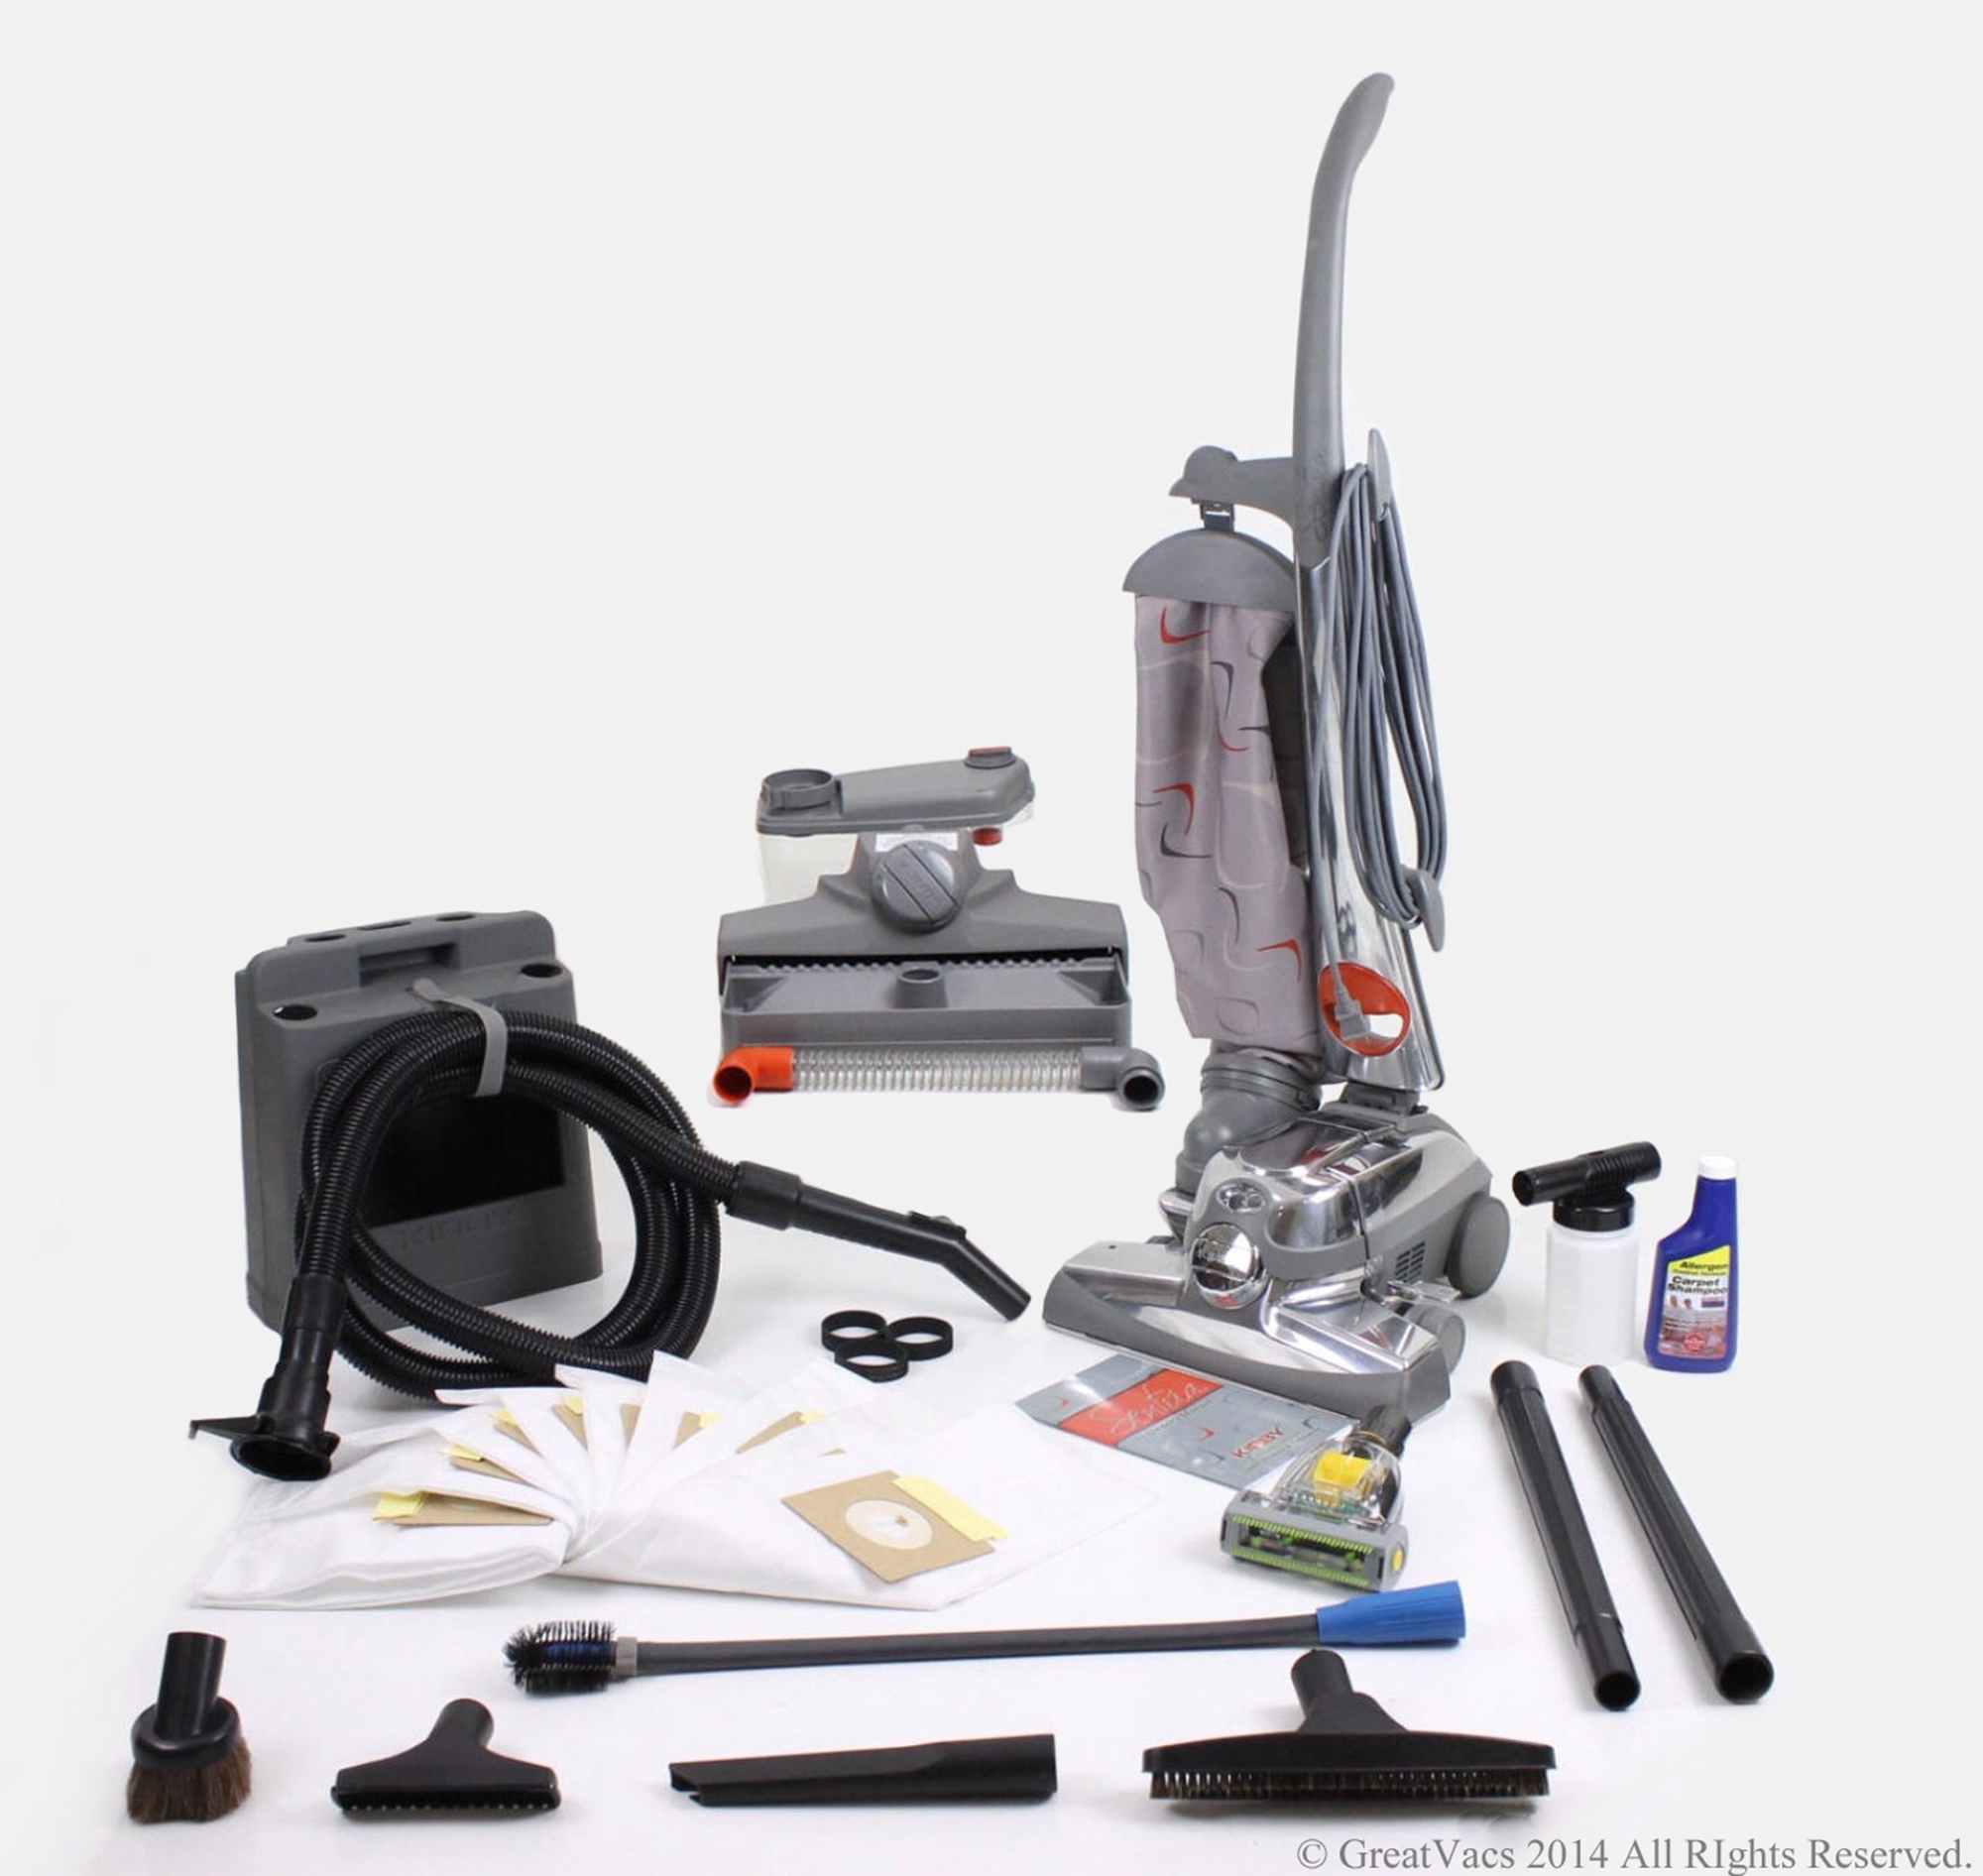 Reconditioned Kirby Sentria Vacuum loaded with new tools, turbo brush, bags & 5 Year Warranty